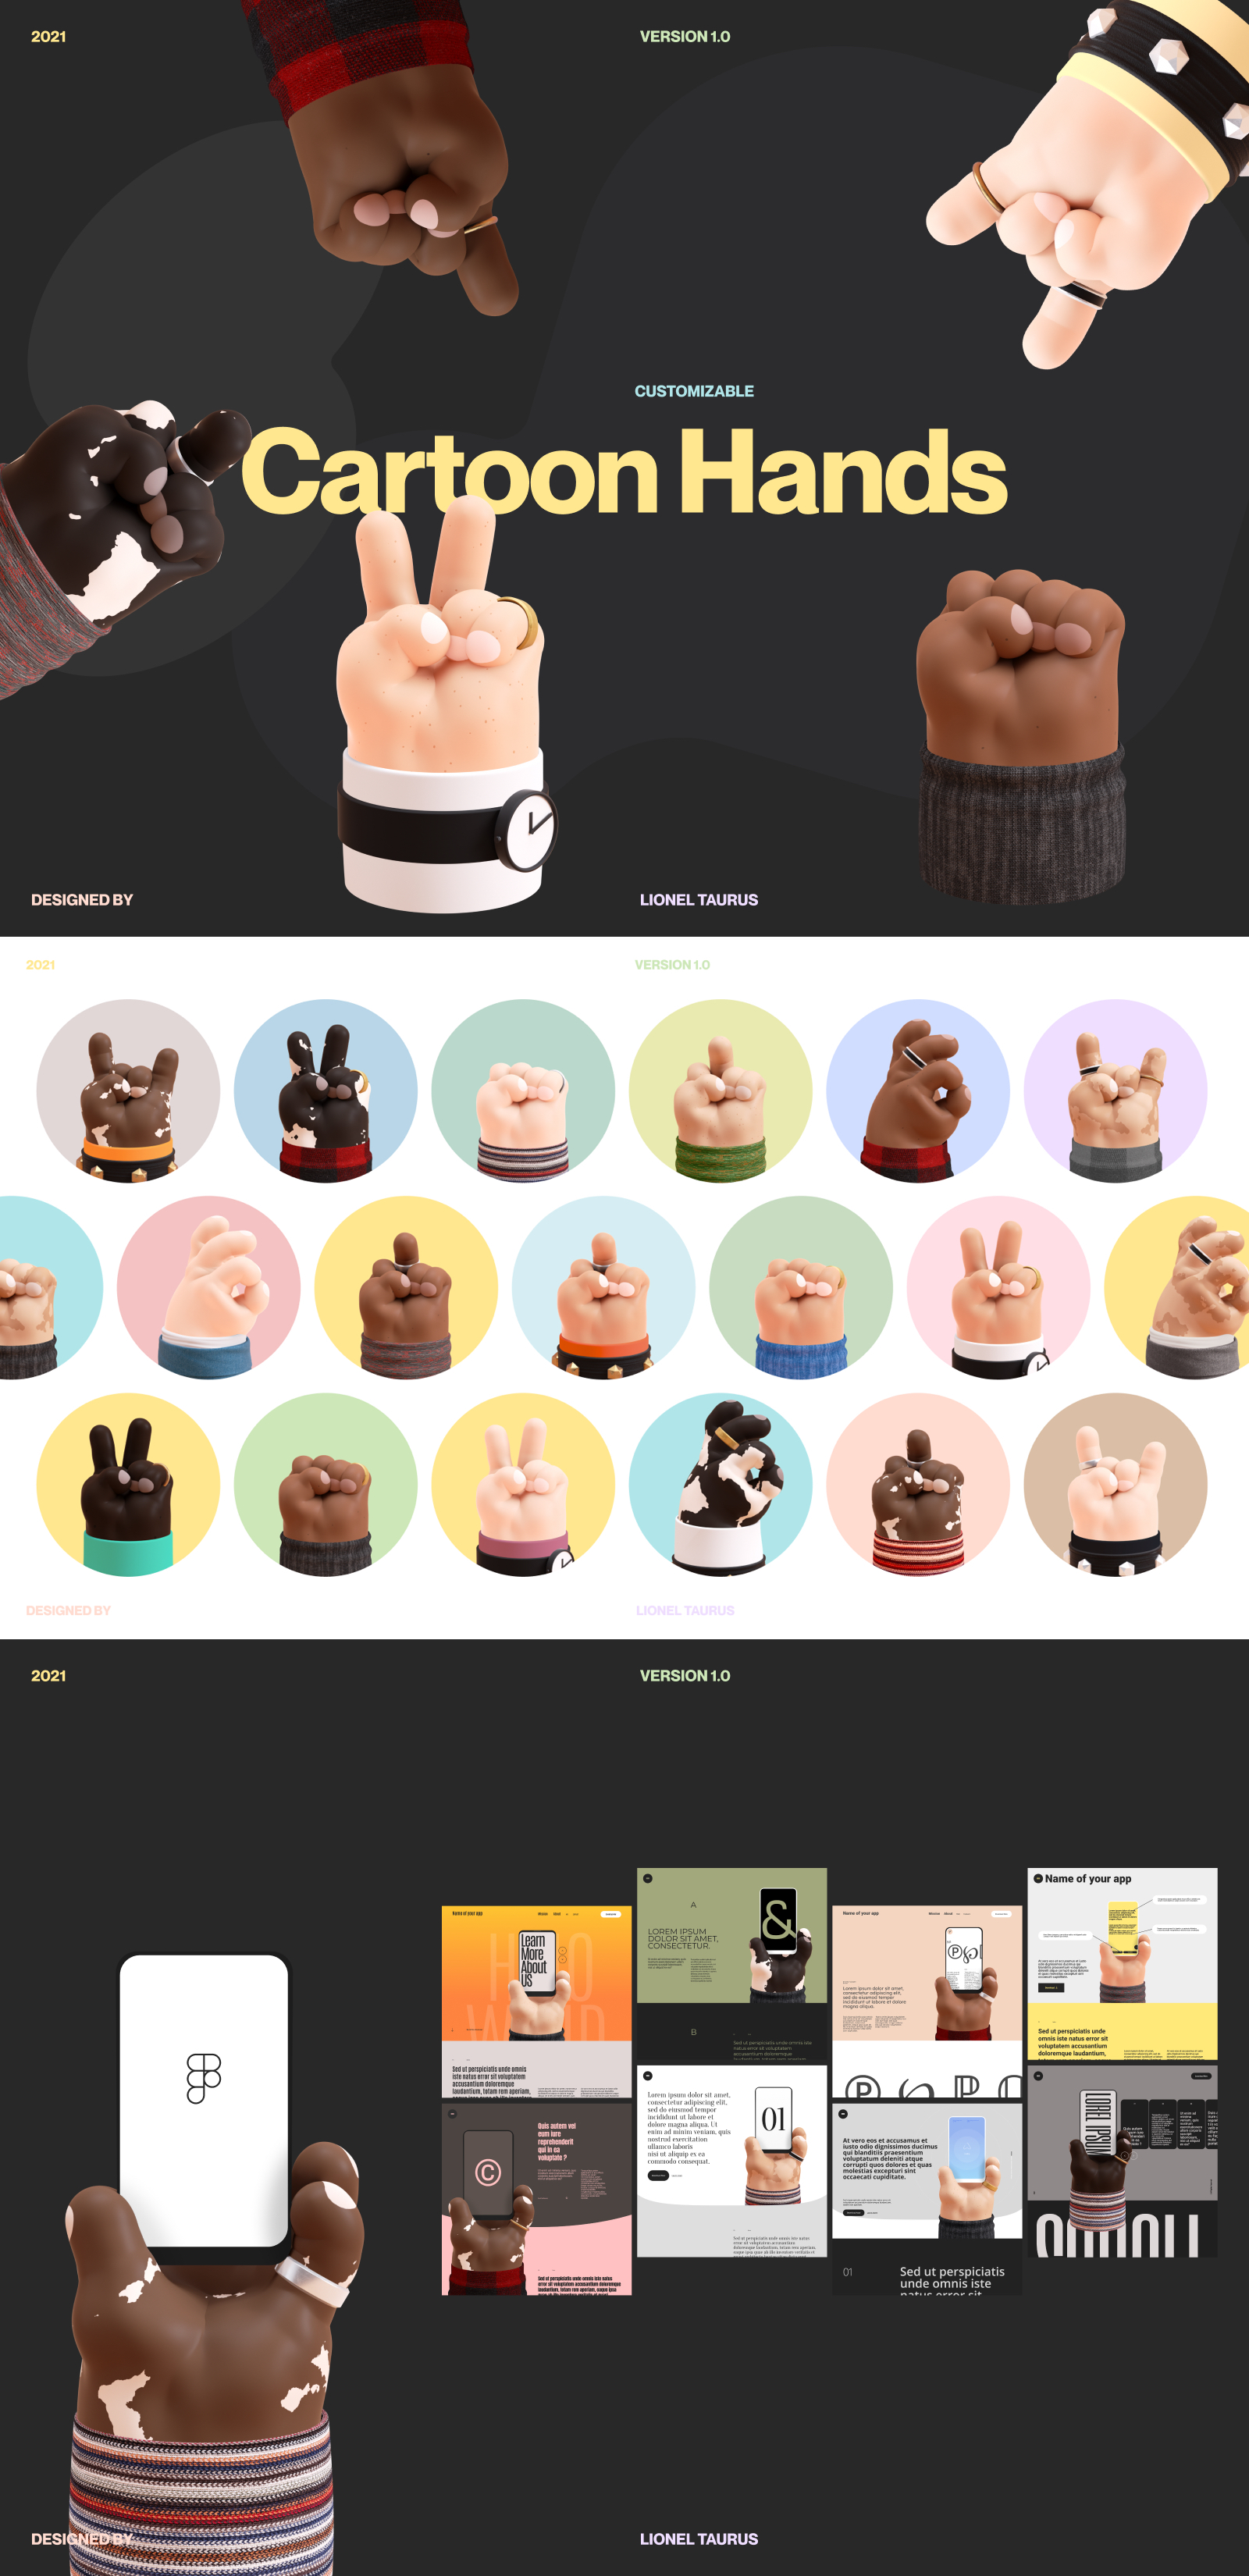 Free 3D Cartoon Hands Mockup for Figma - A collection of 3D cartoon hands, hand-crafted to use for your design and illustrations! The hands are made out of components so you can make your own and create variants.